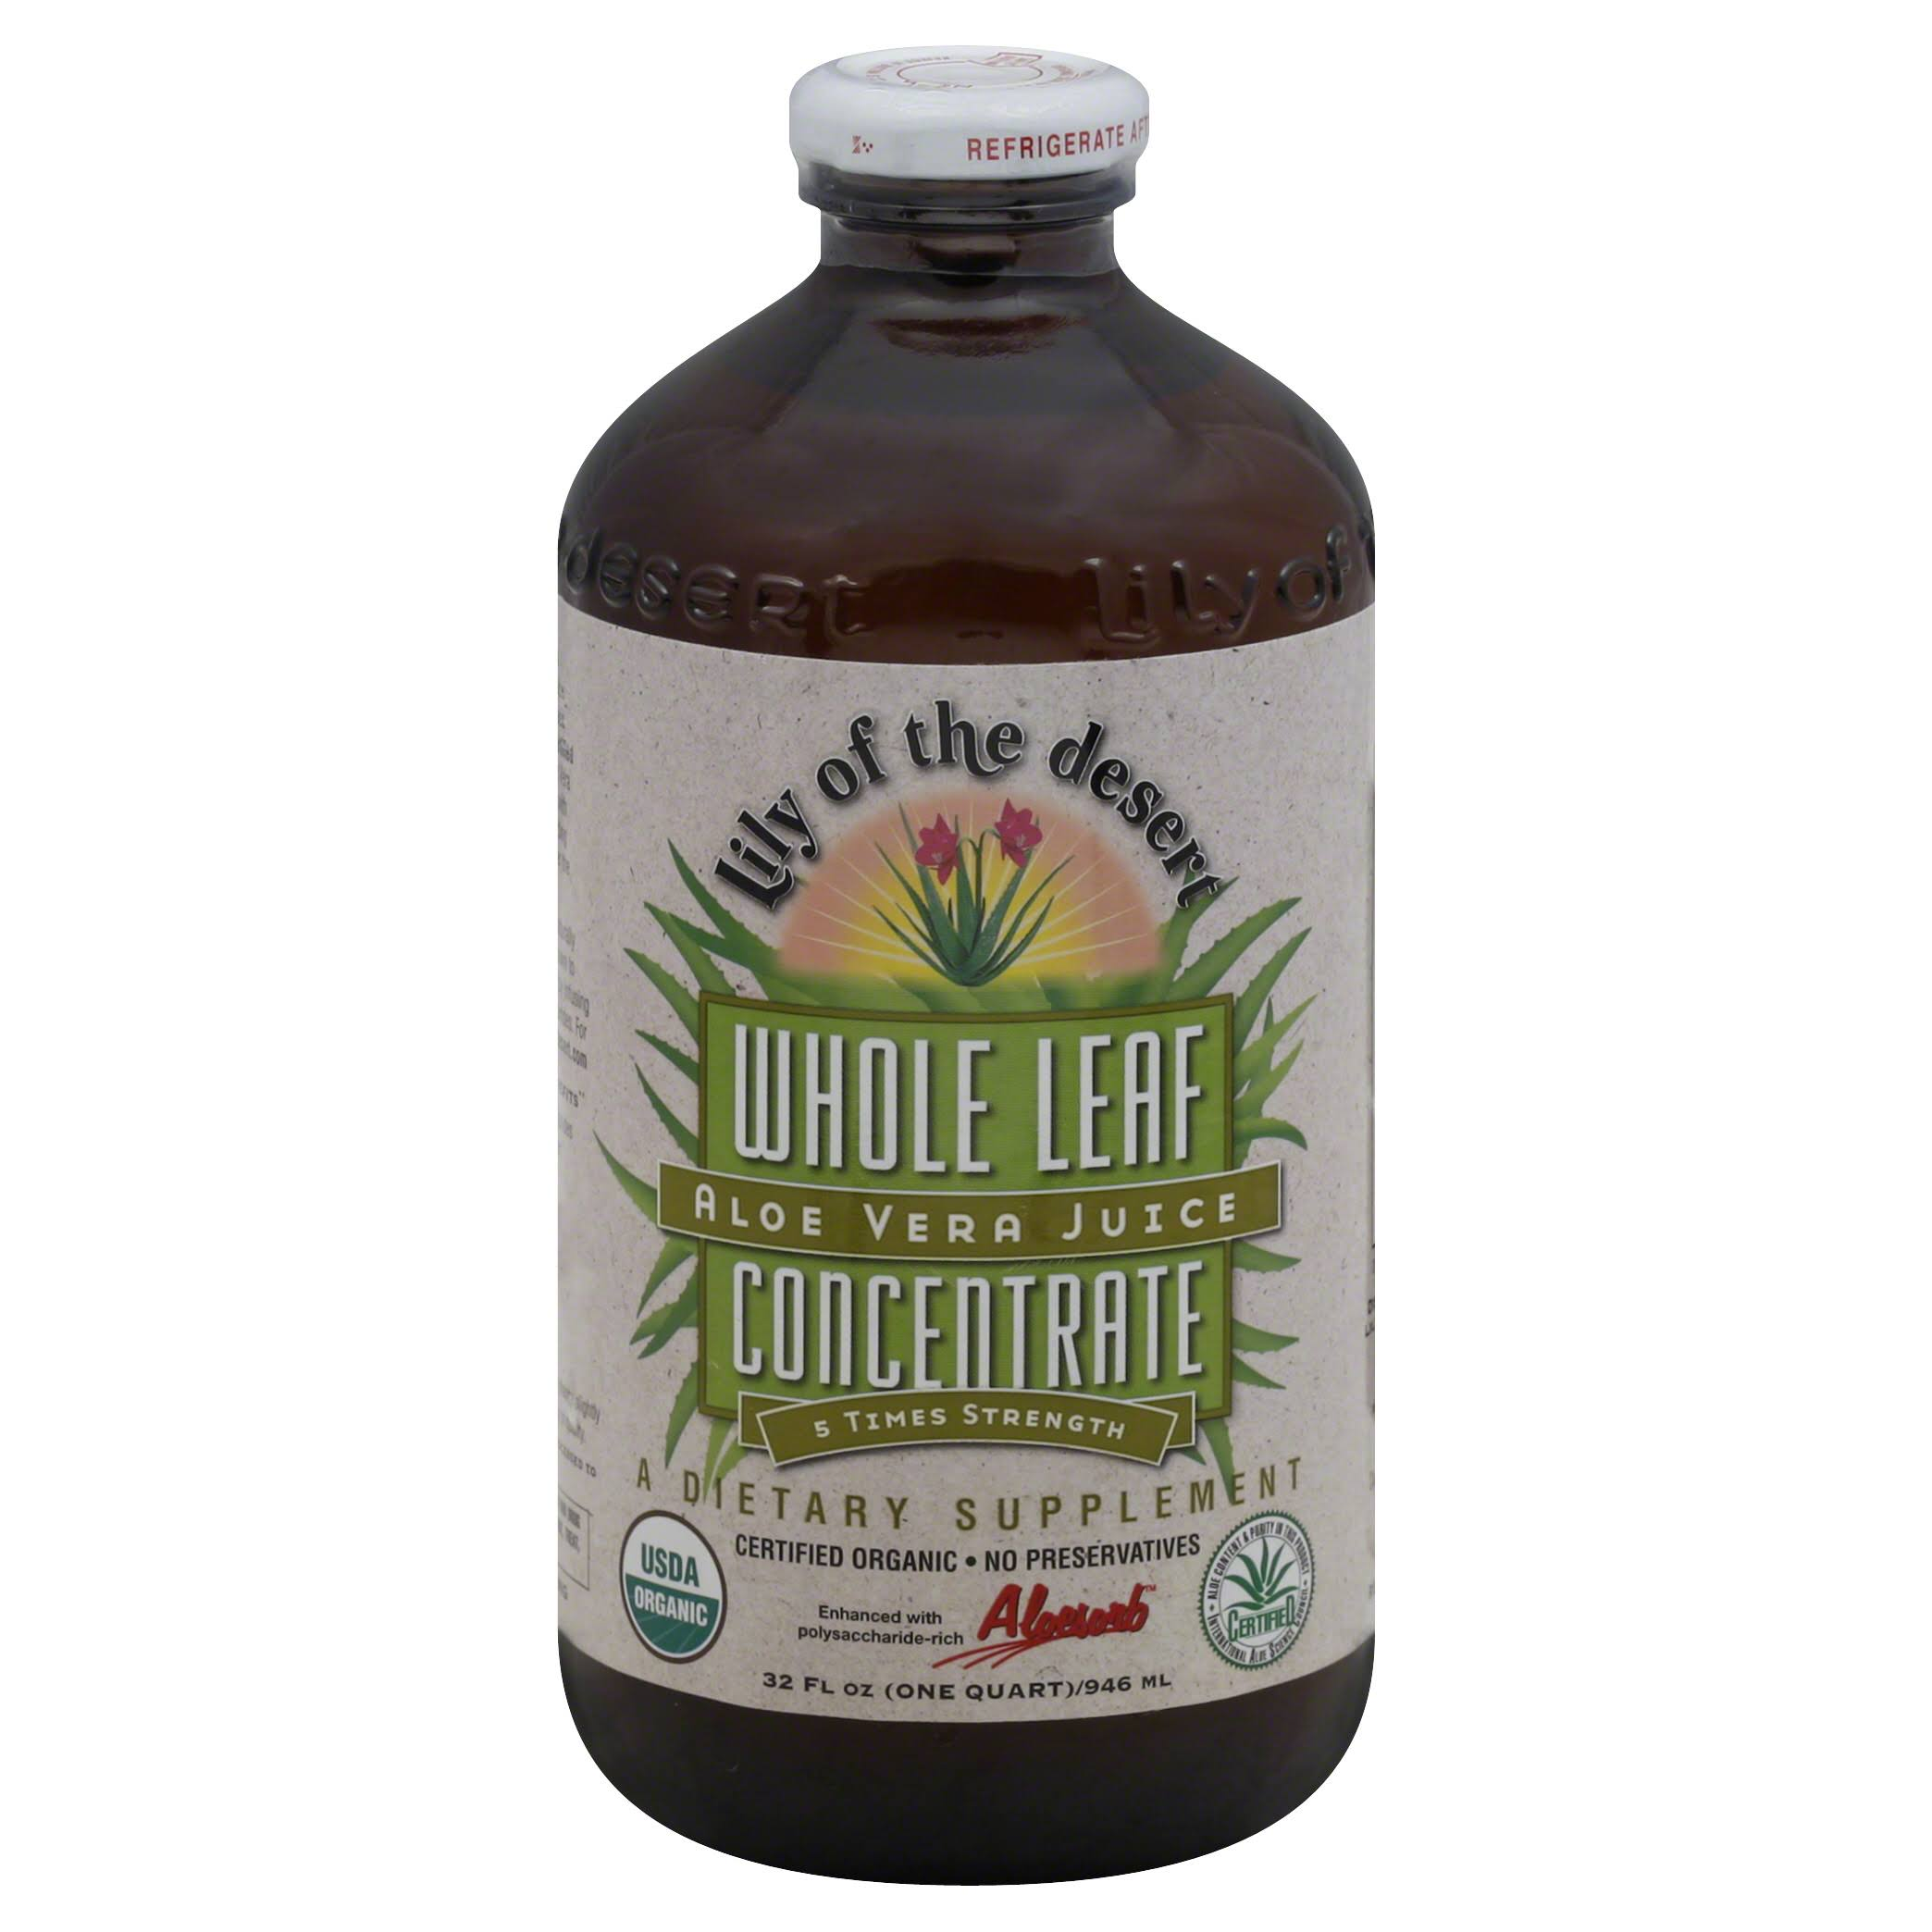 Lily of The Desert Aloe Vera Juice Whole Leaf Concentrate Supplement - 32oz